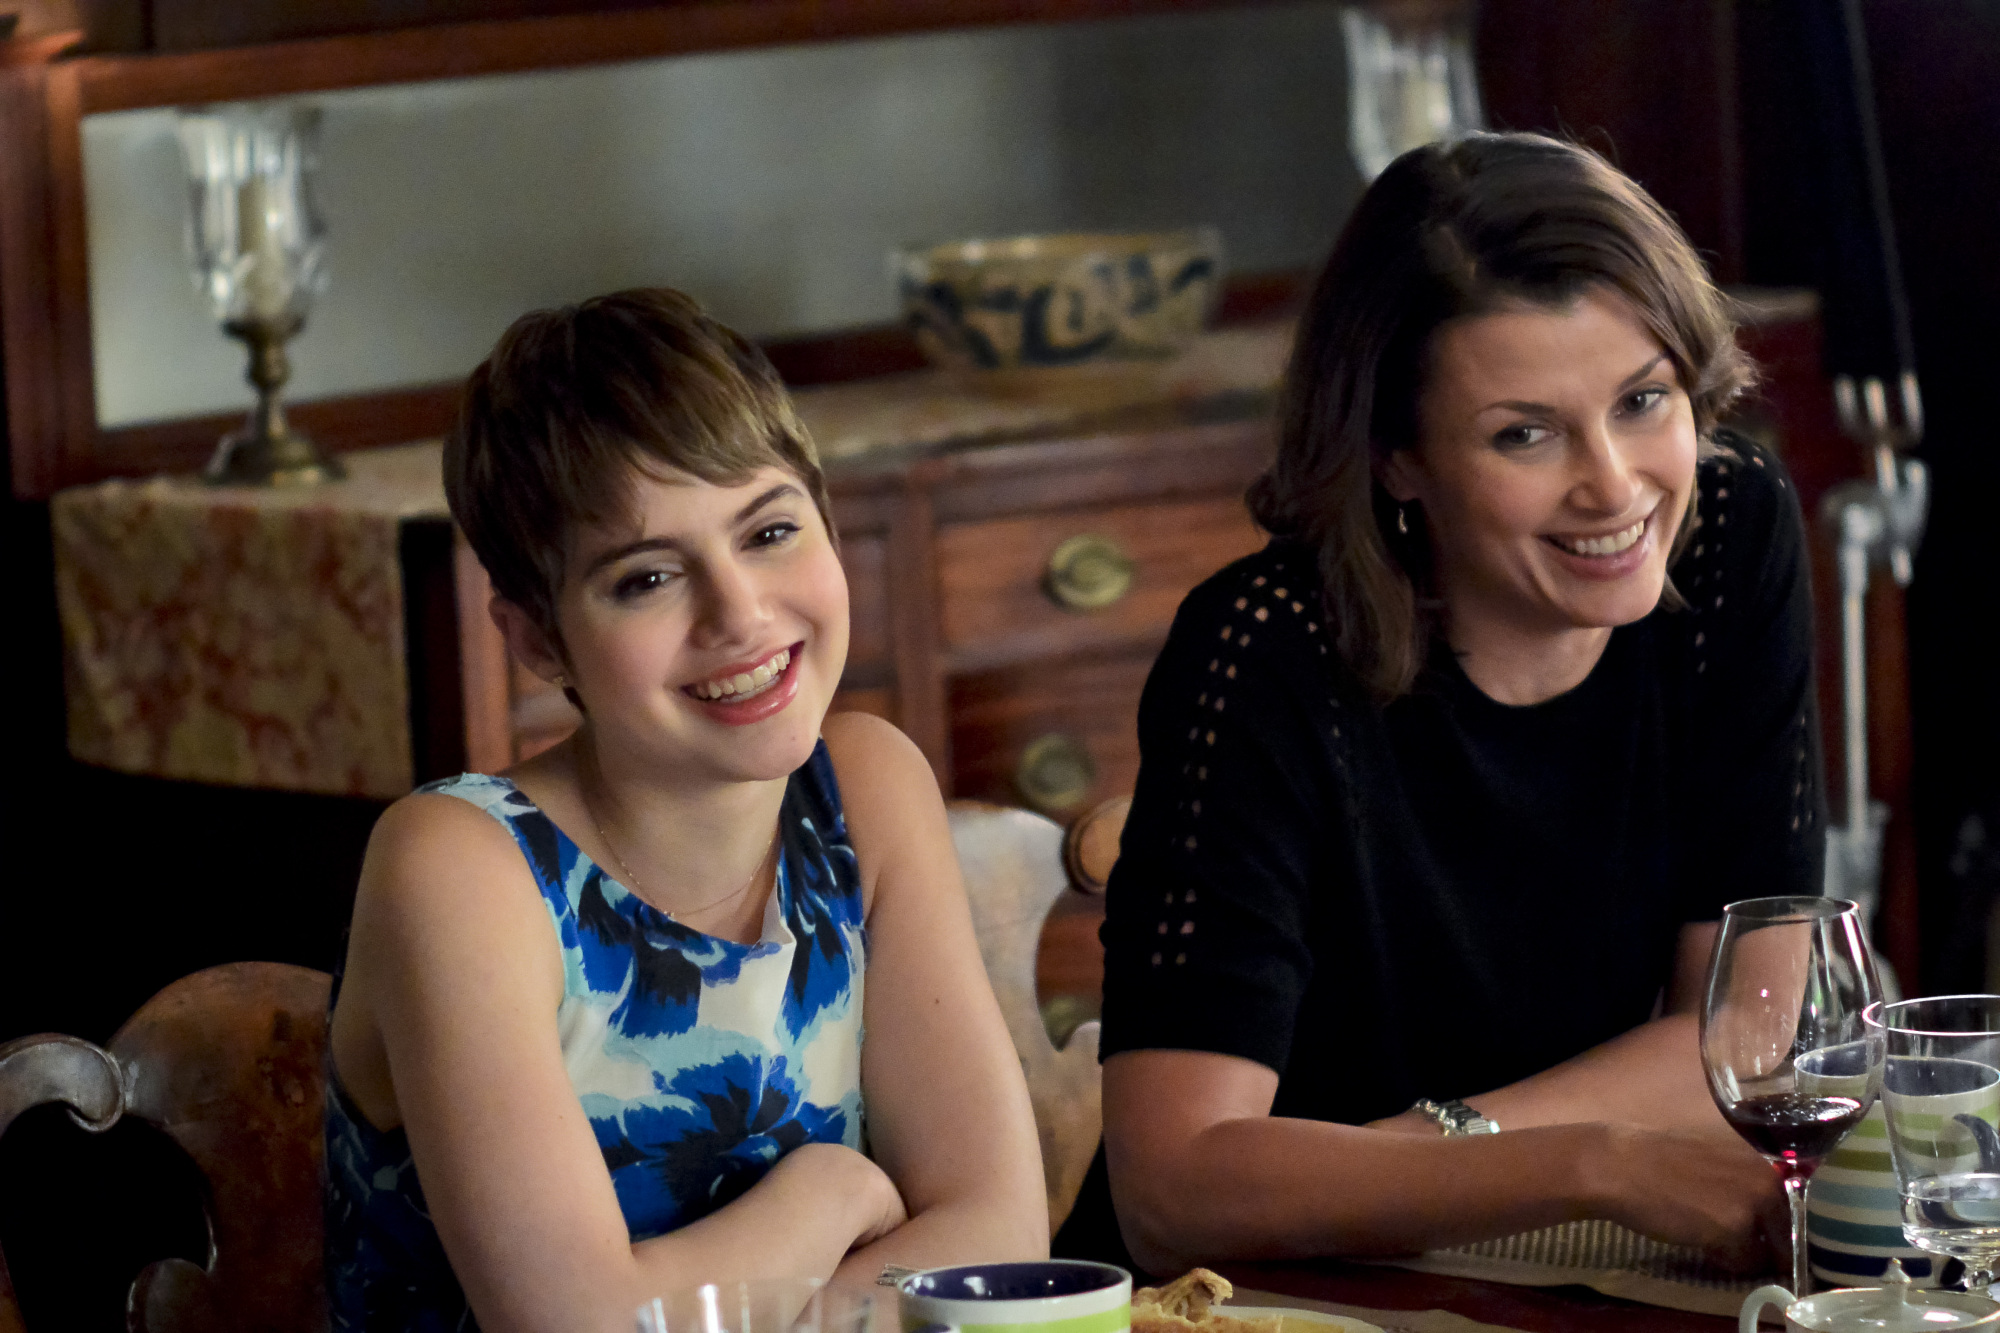 Nicky and Erin have beautiful smiles, and an even more beautiful mother-daughter relationship.